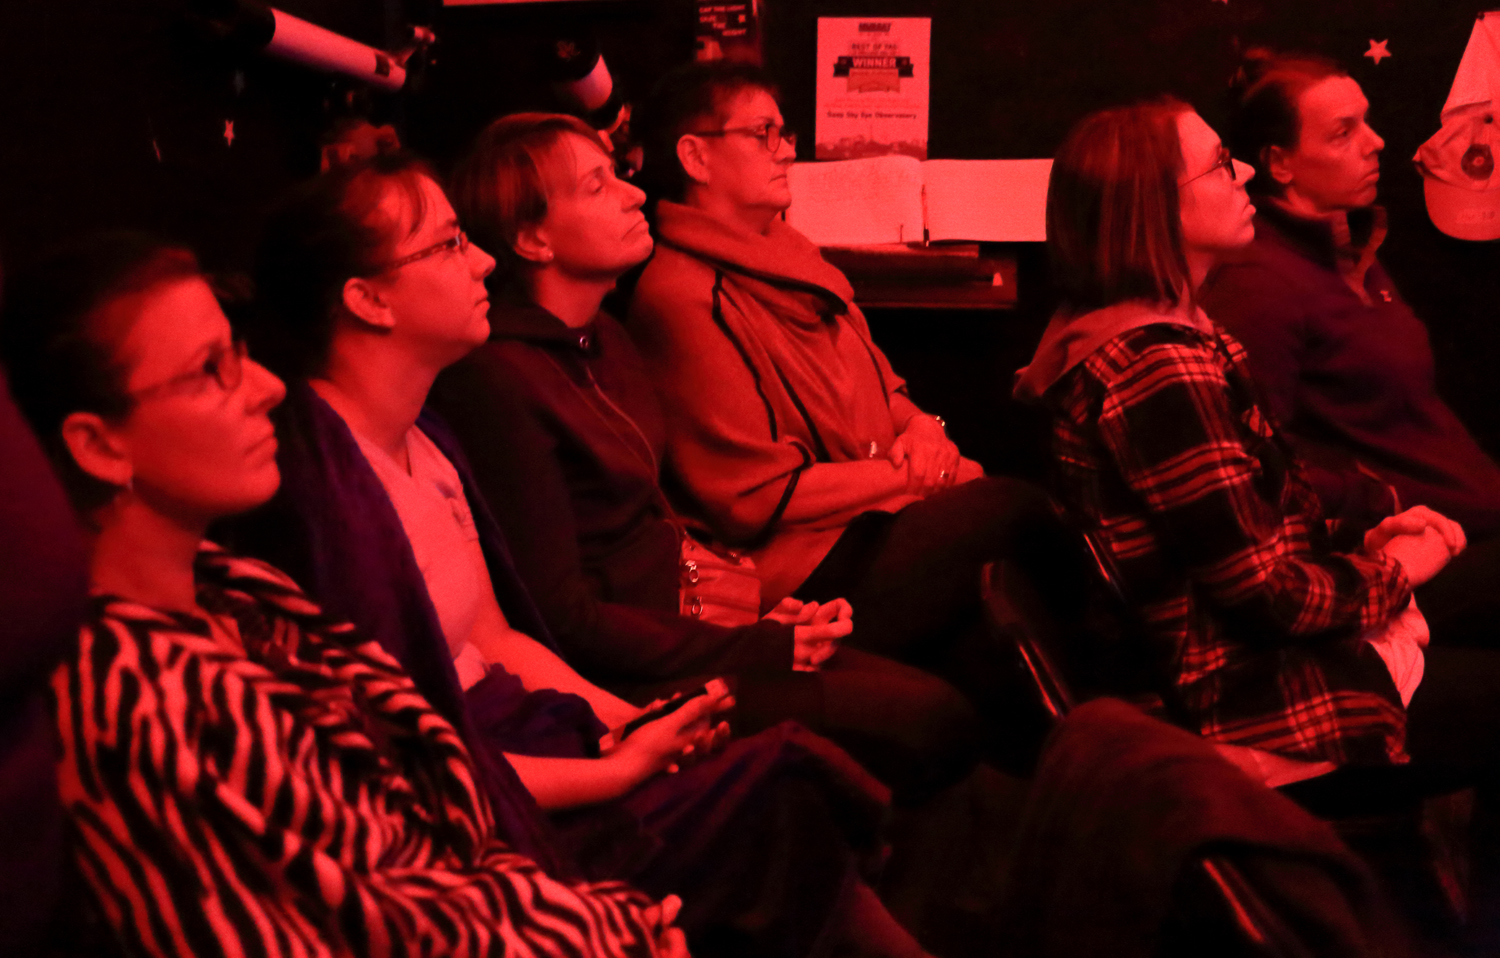 Indoor lecture session - *red light preserves night vision*